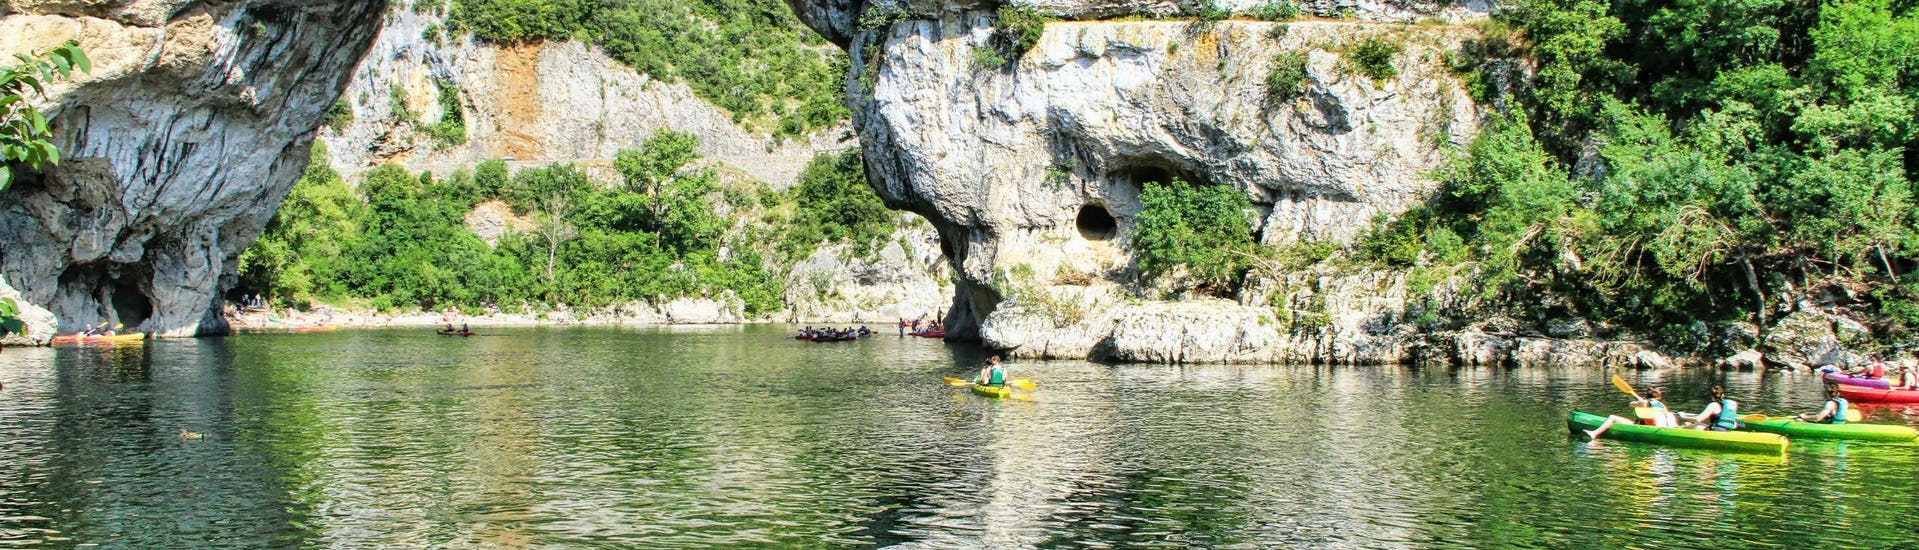 A group of people is paddling through the Pont-d'Arc while canoeing in Ardèche.